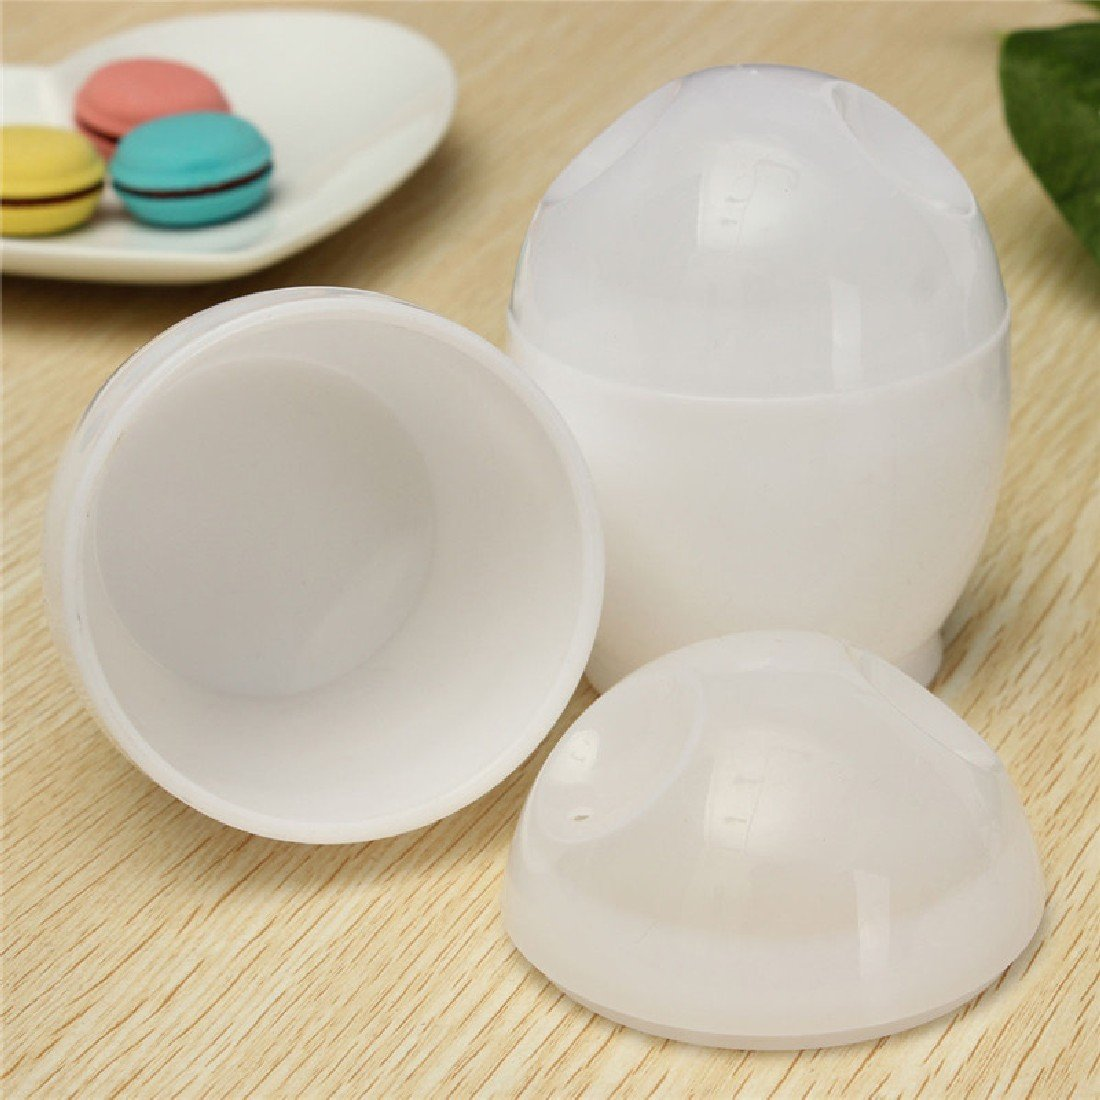 Hisuper-Store 2pcs White Microwave Egg Cookers//Boiler Cup with Removable Lids